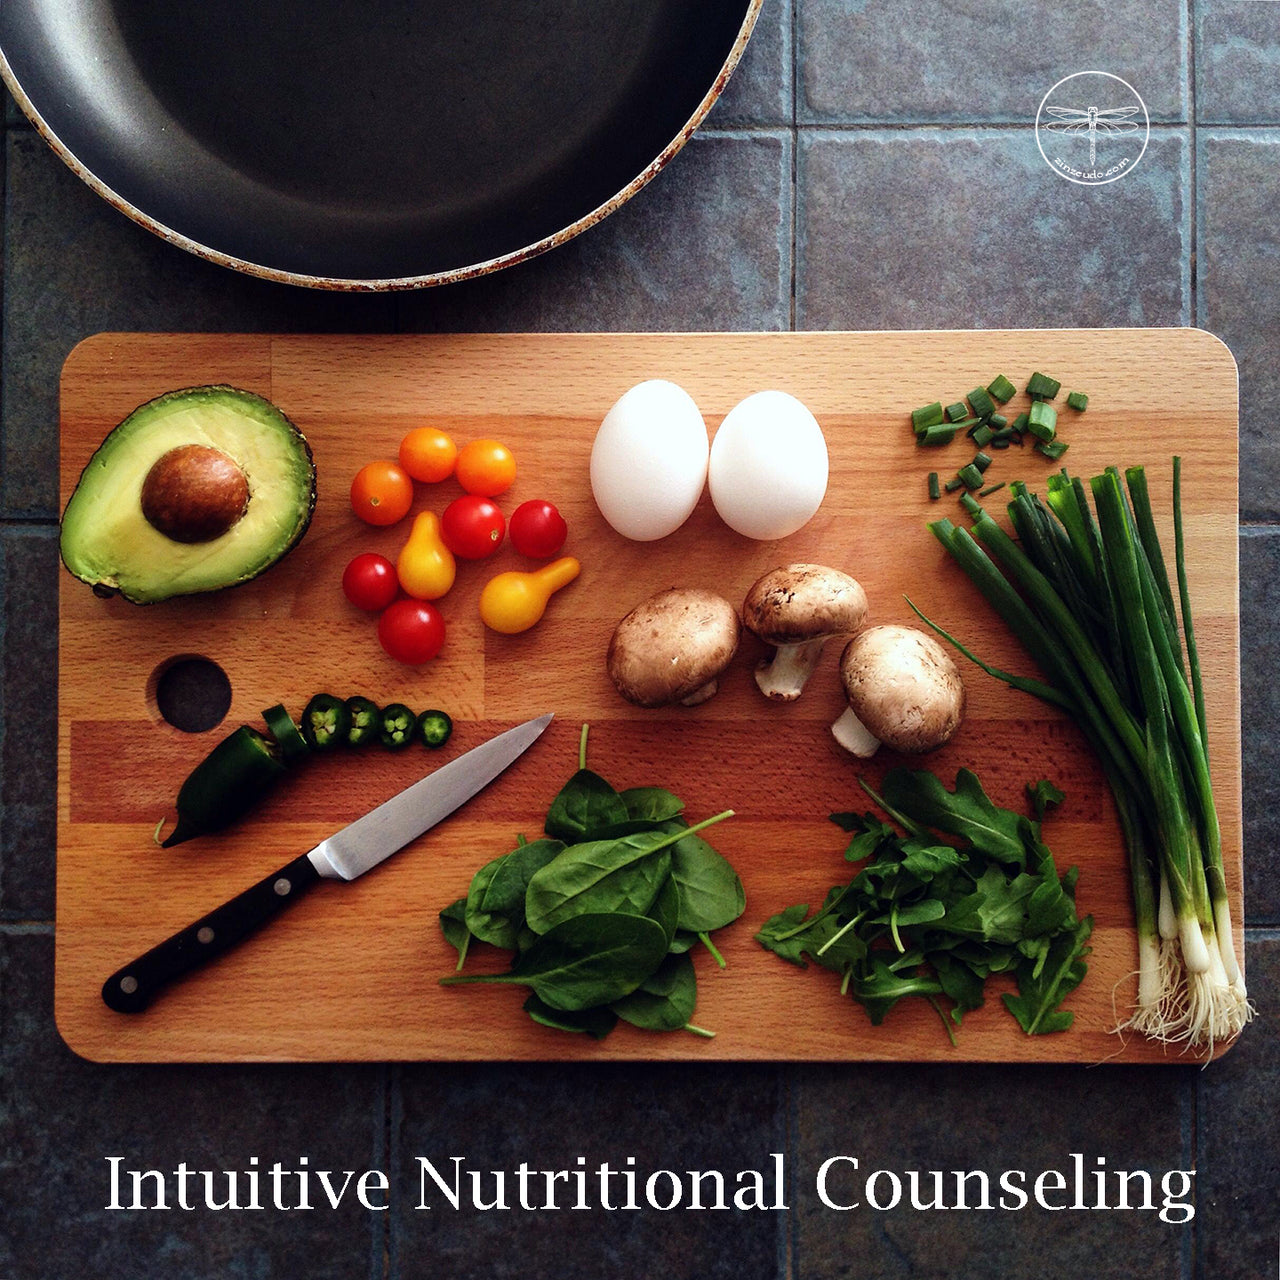 Intuitive Nutritional Counseling